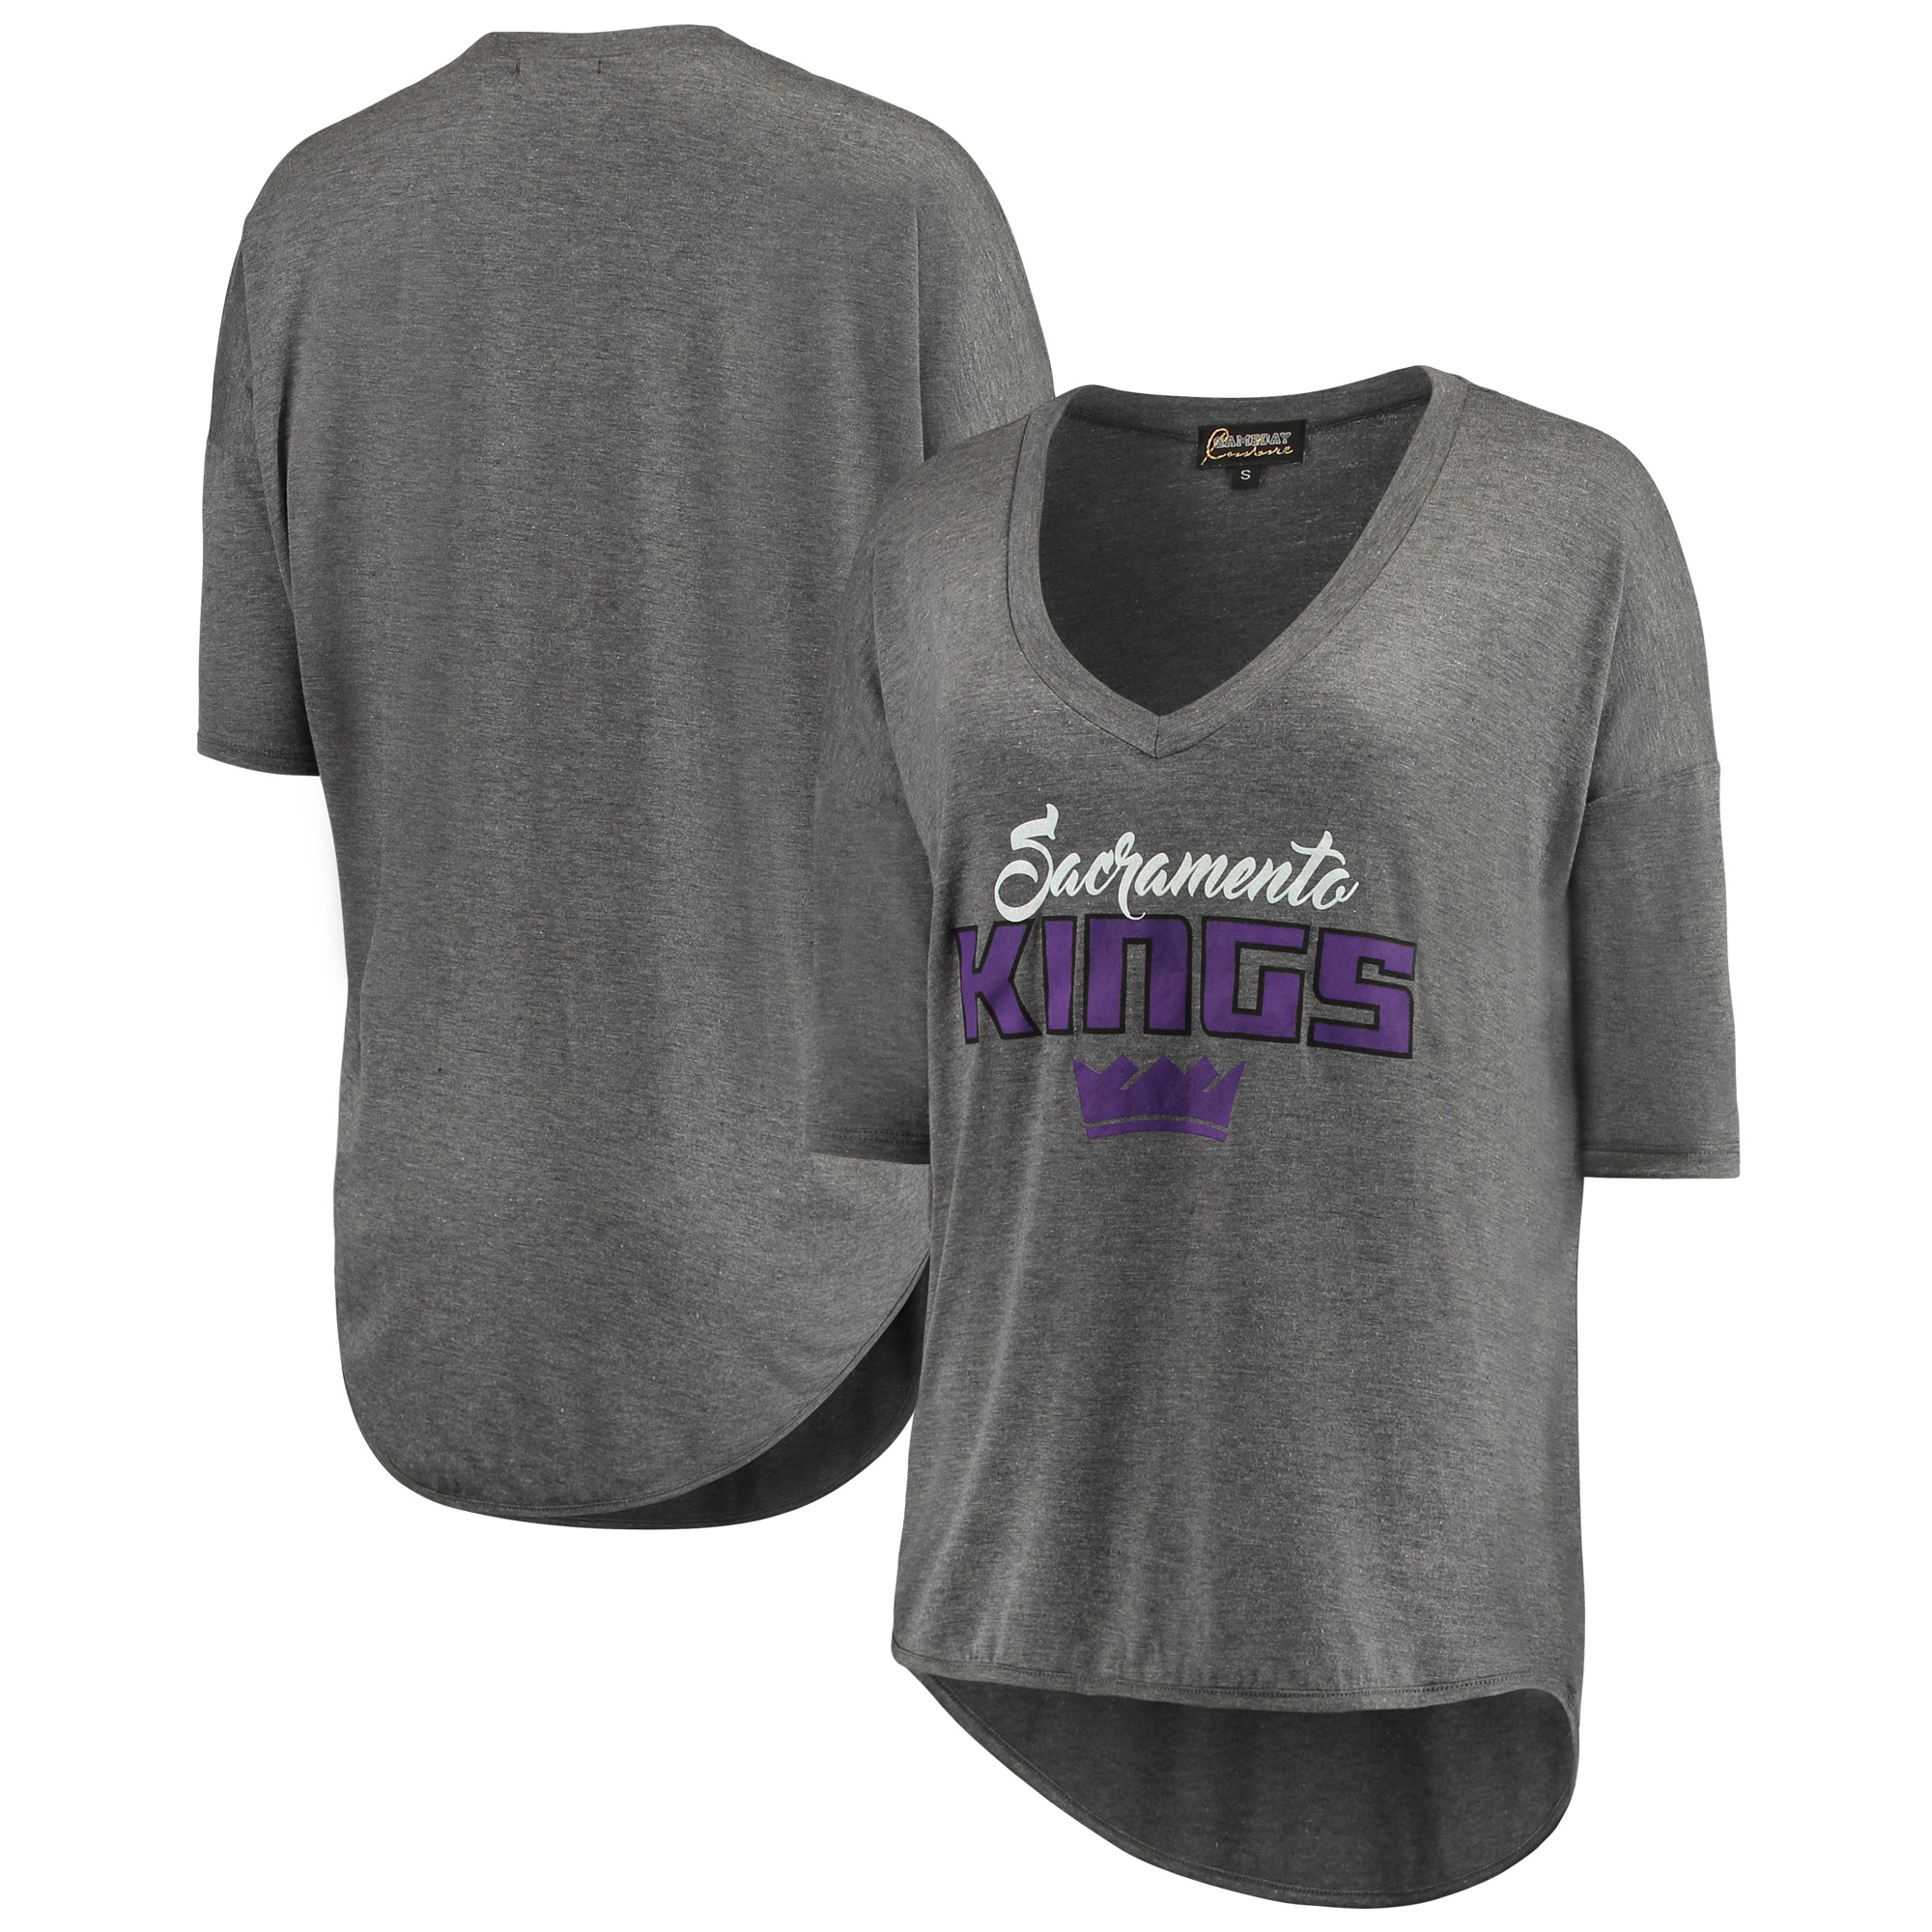 Sacramento Kings Women's Deep V-Neck Tri-Blend Half-Sleeve T-Shirt - Gray